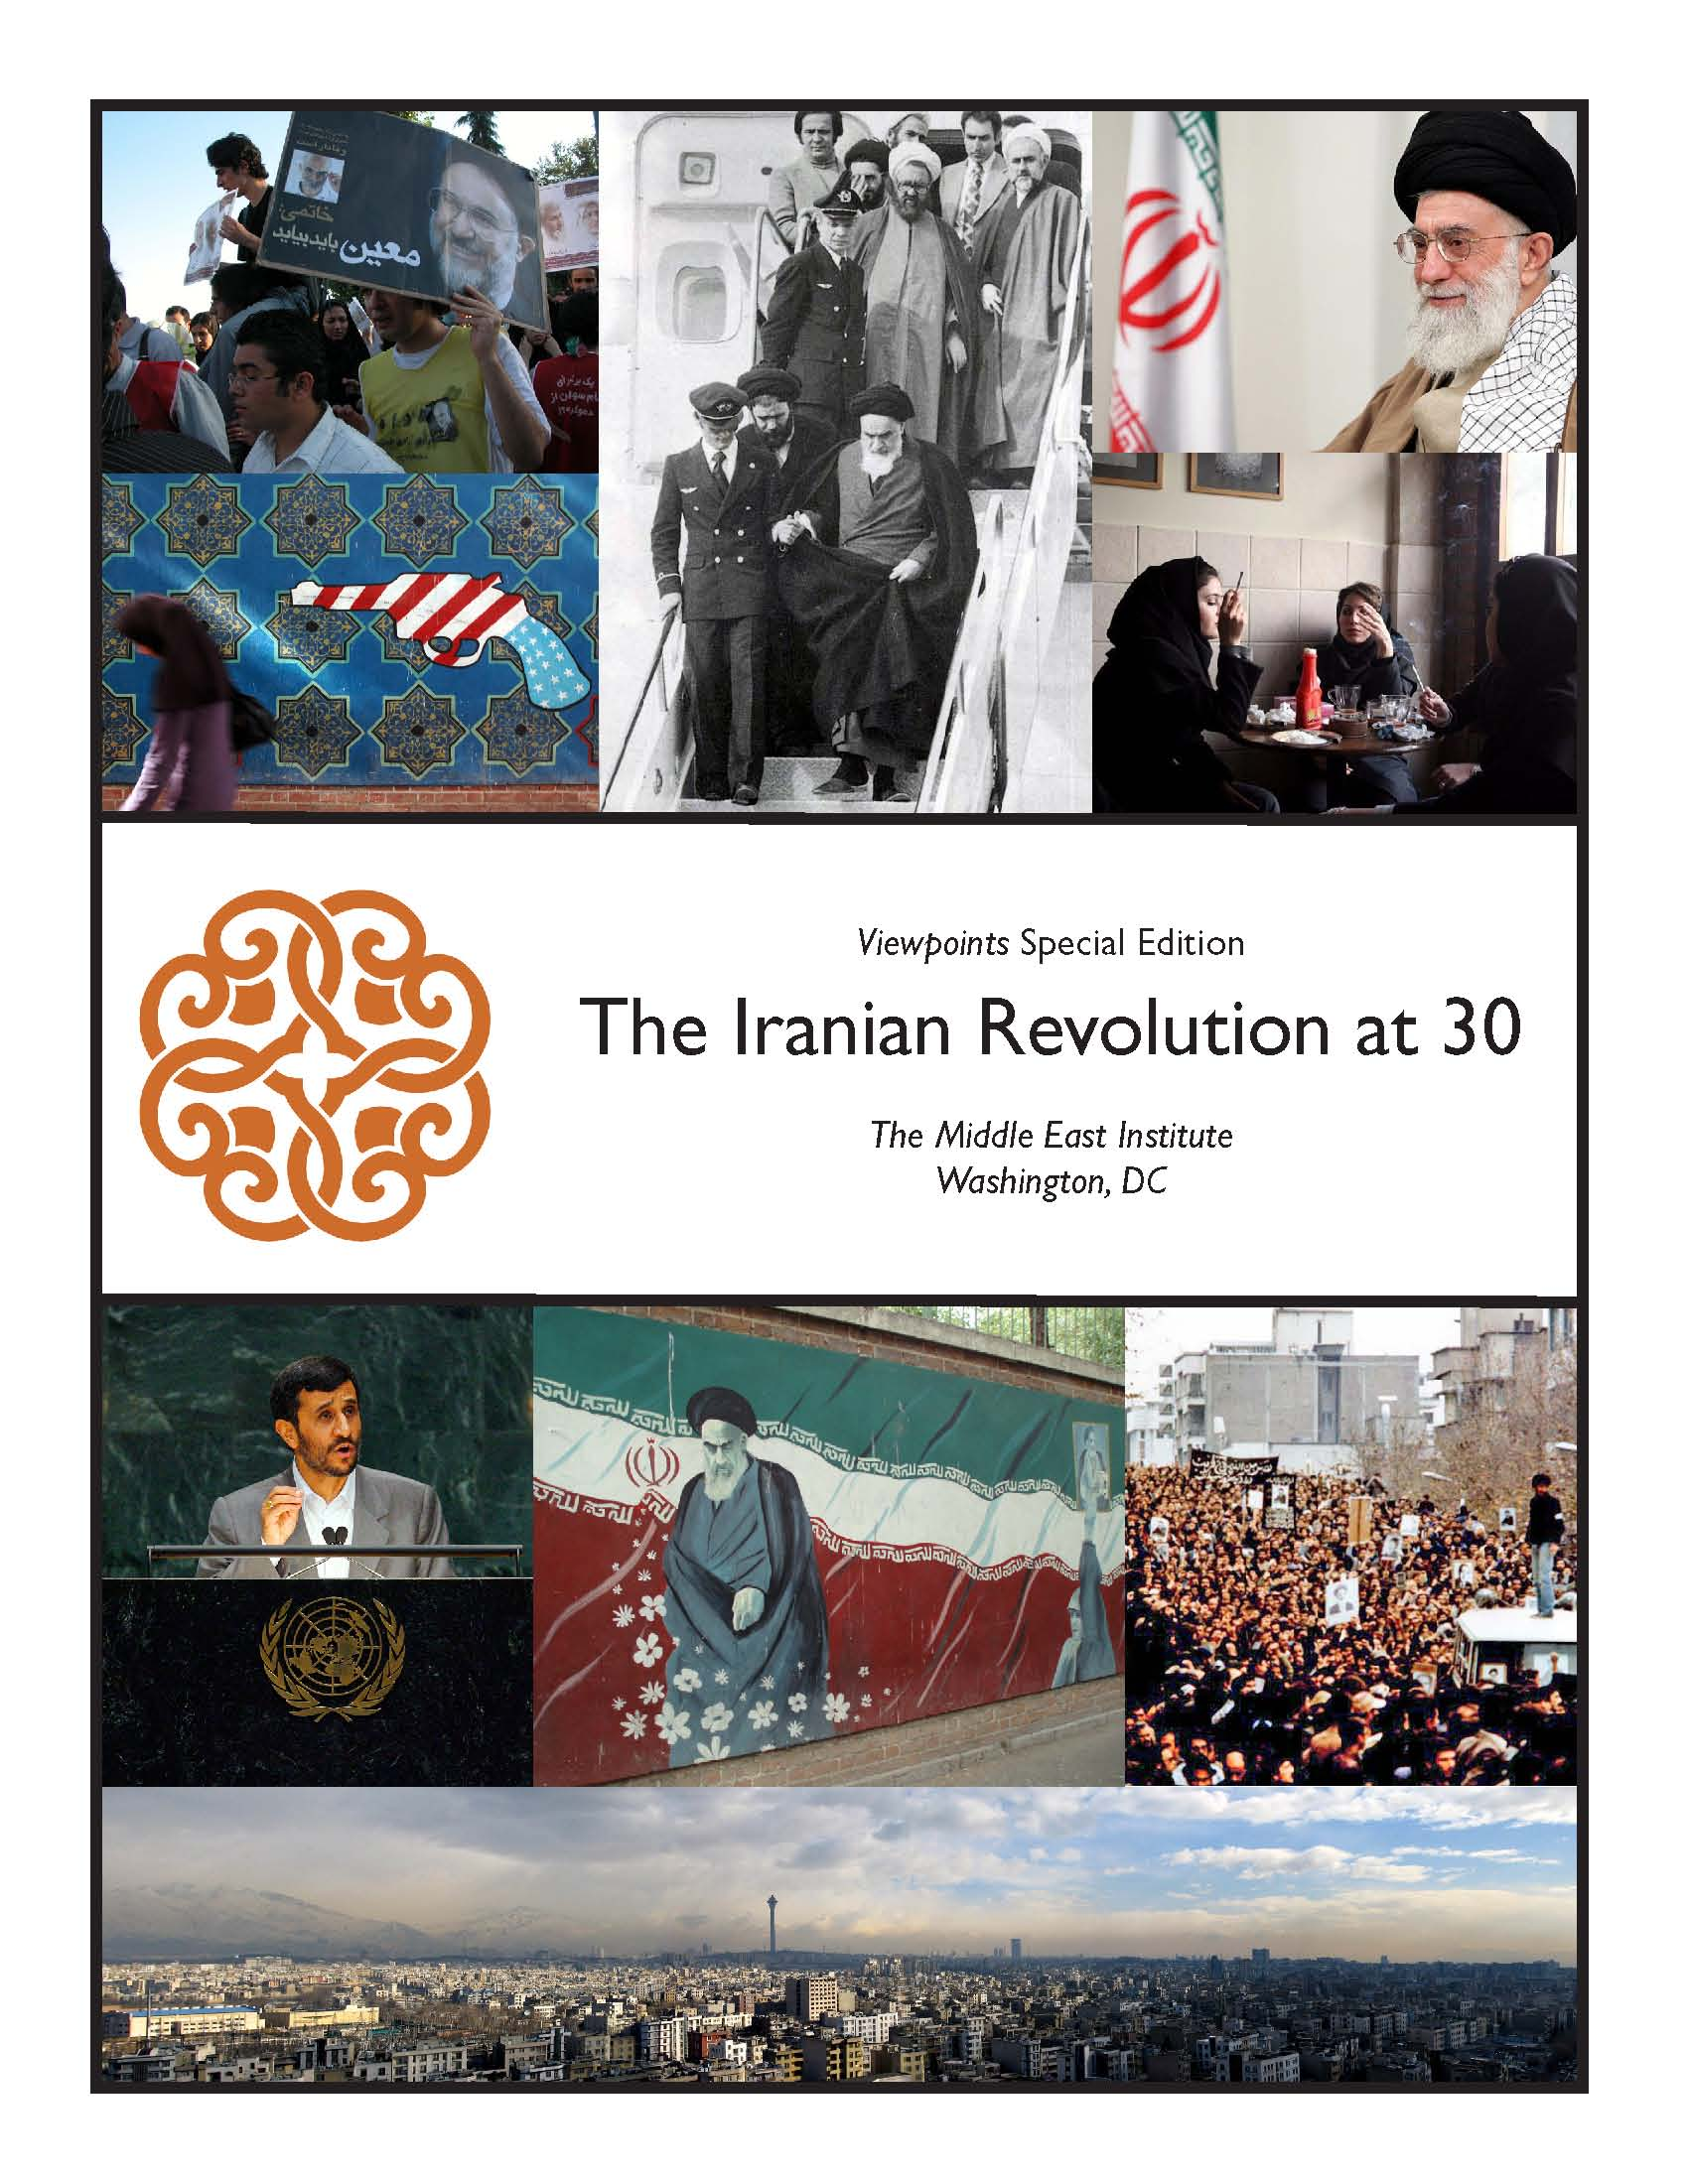 The Iranian Revolution at 30